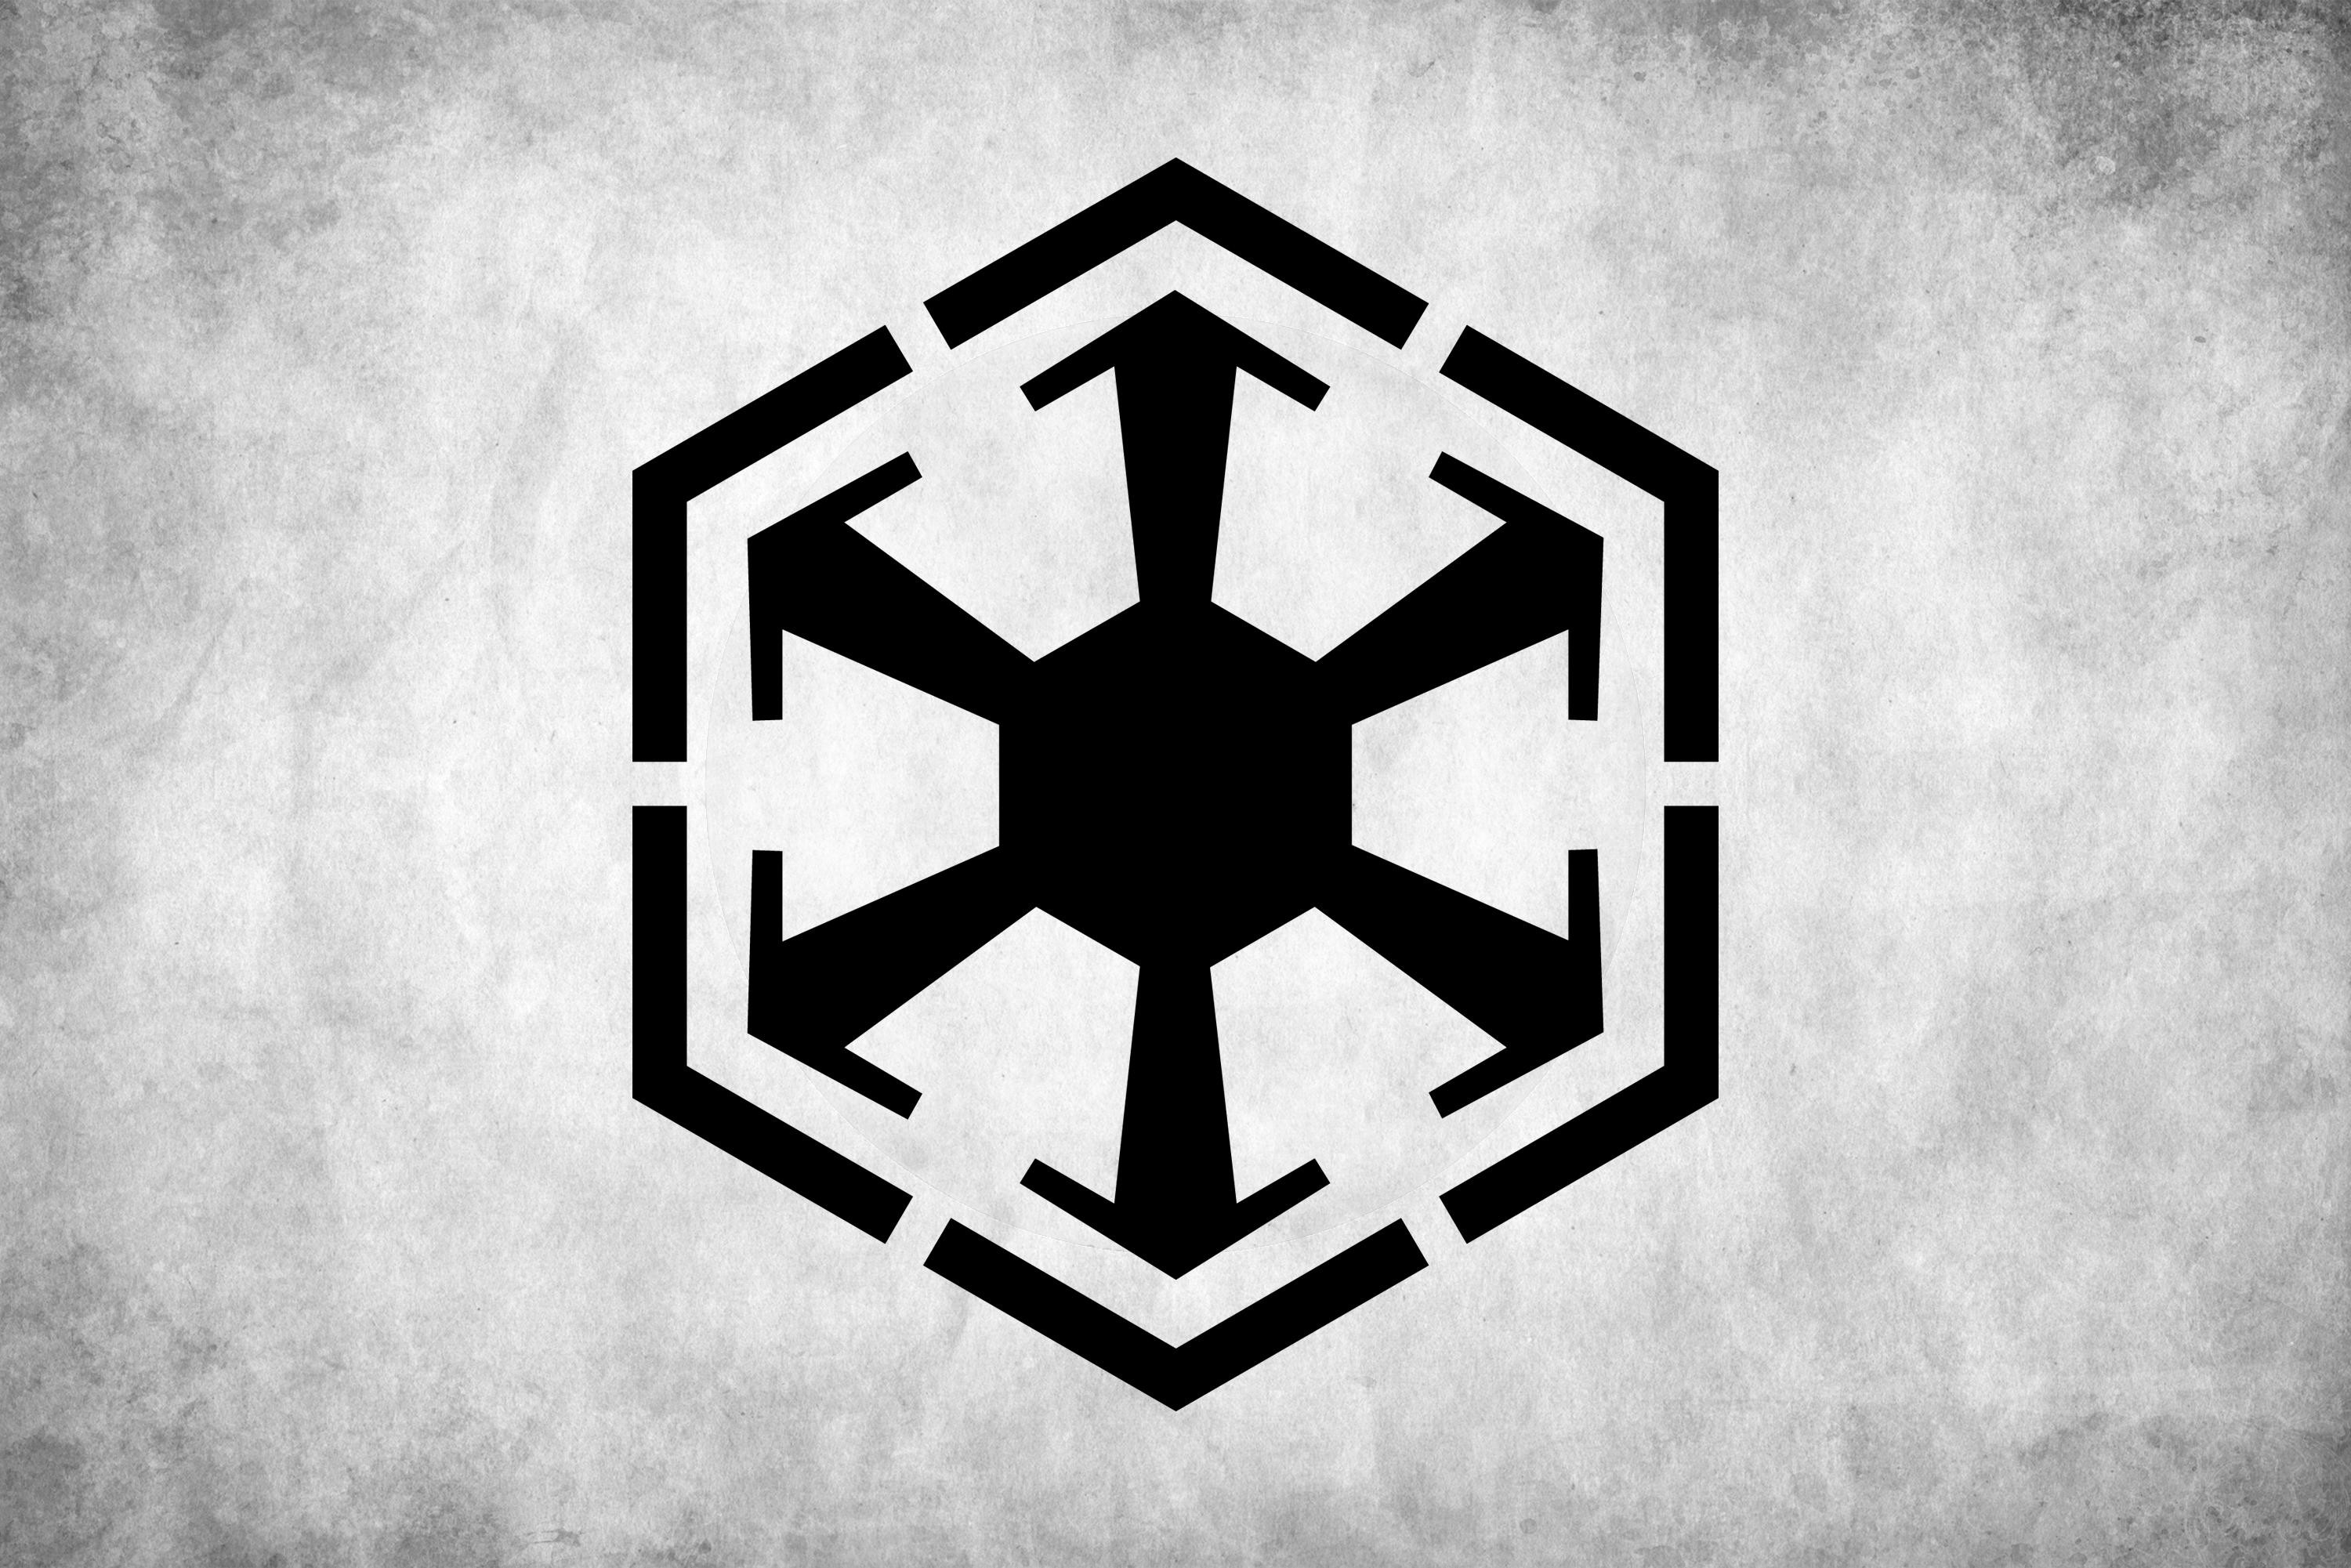 3000x2001 Images For > Sith Logo Wallpaper